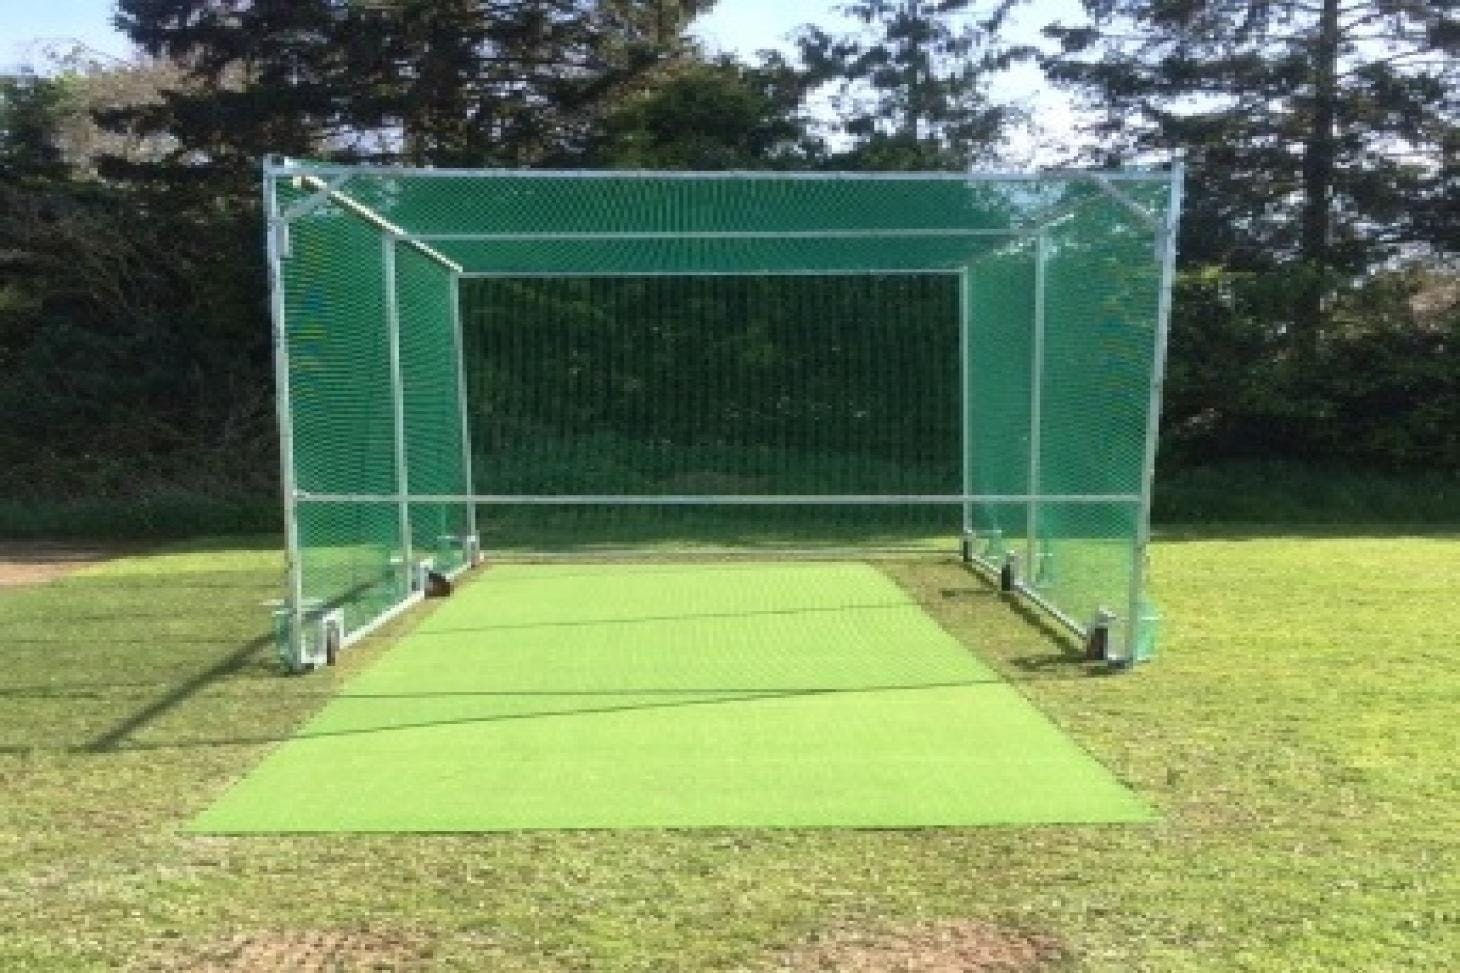 Desborough College Nets | Artificial cricket facilities